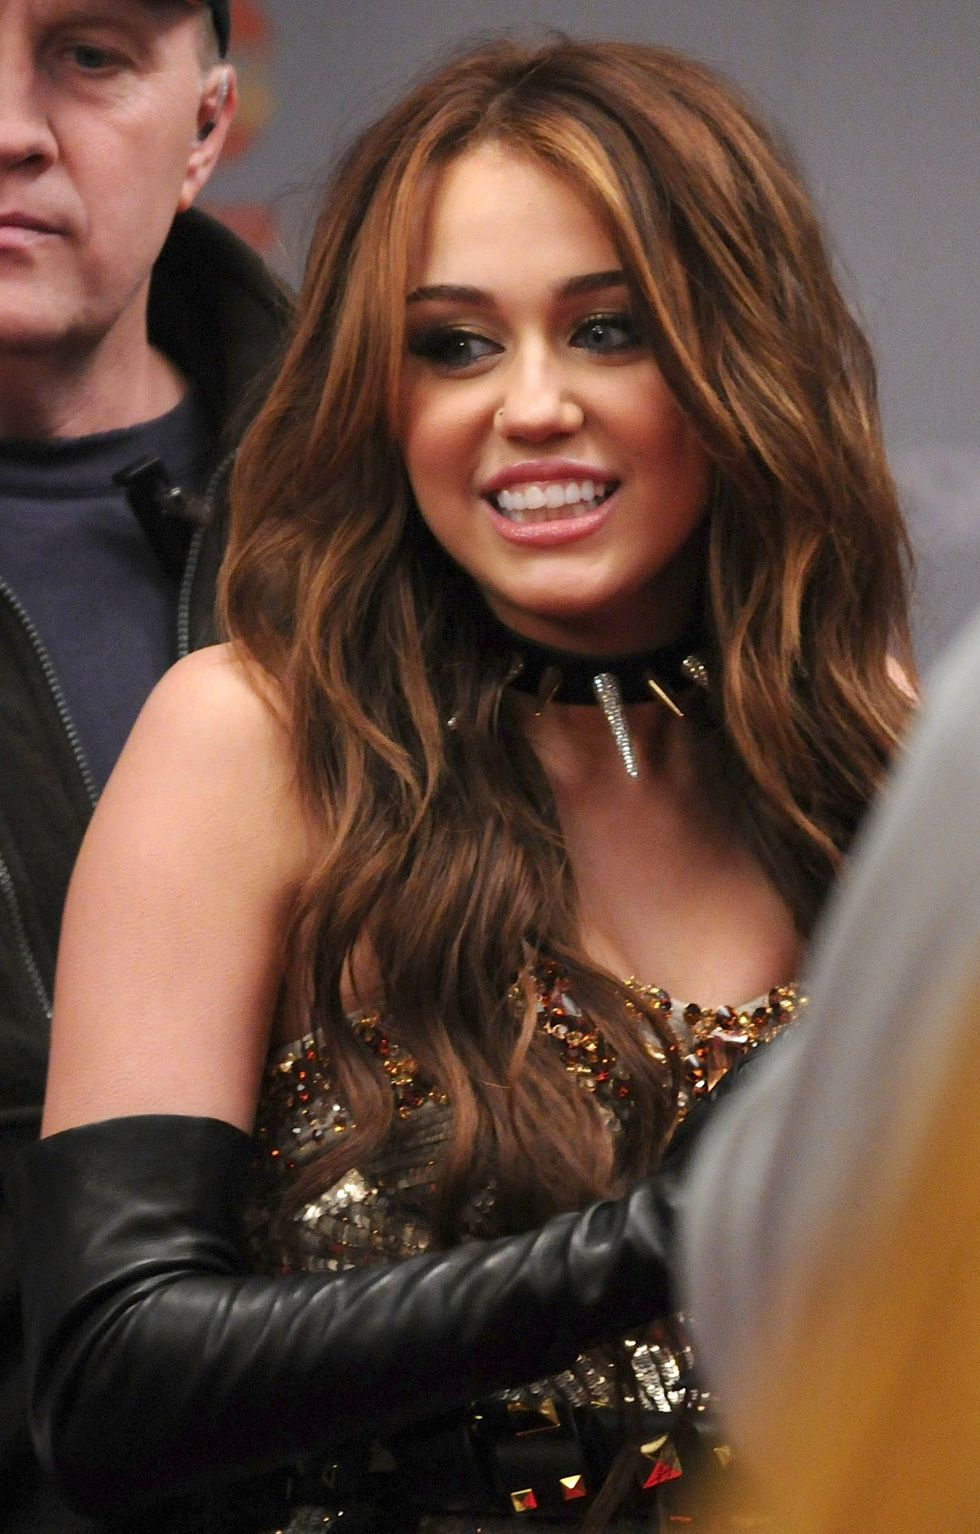 miley-cyrus-leggy-on-the-sex-and-the-city-2-film-set-14